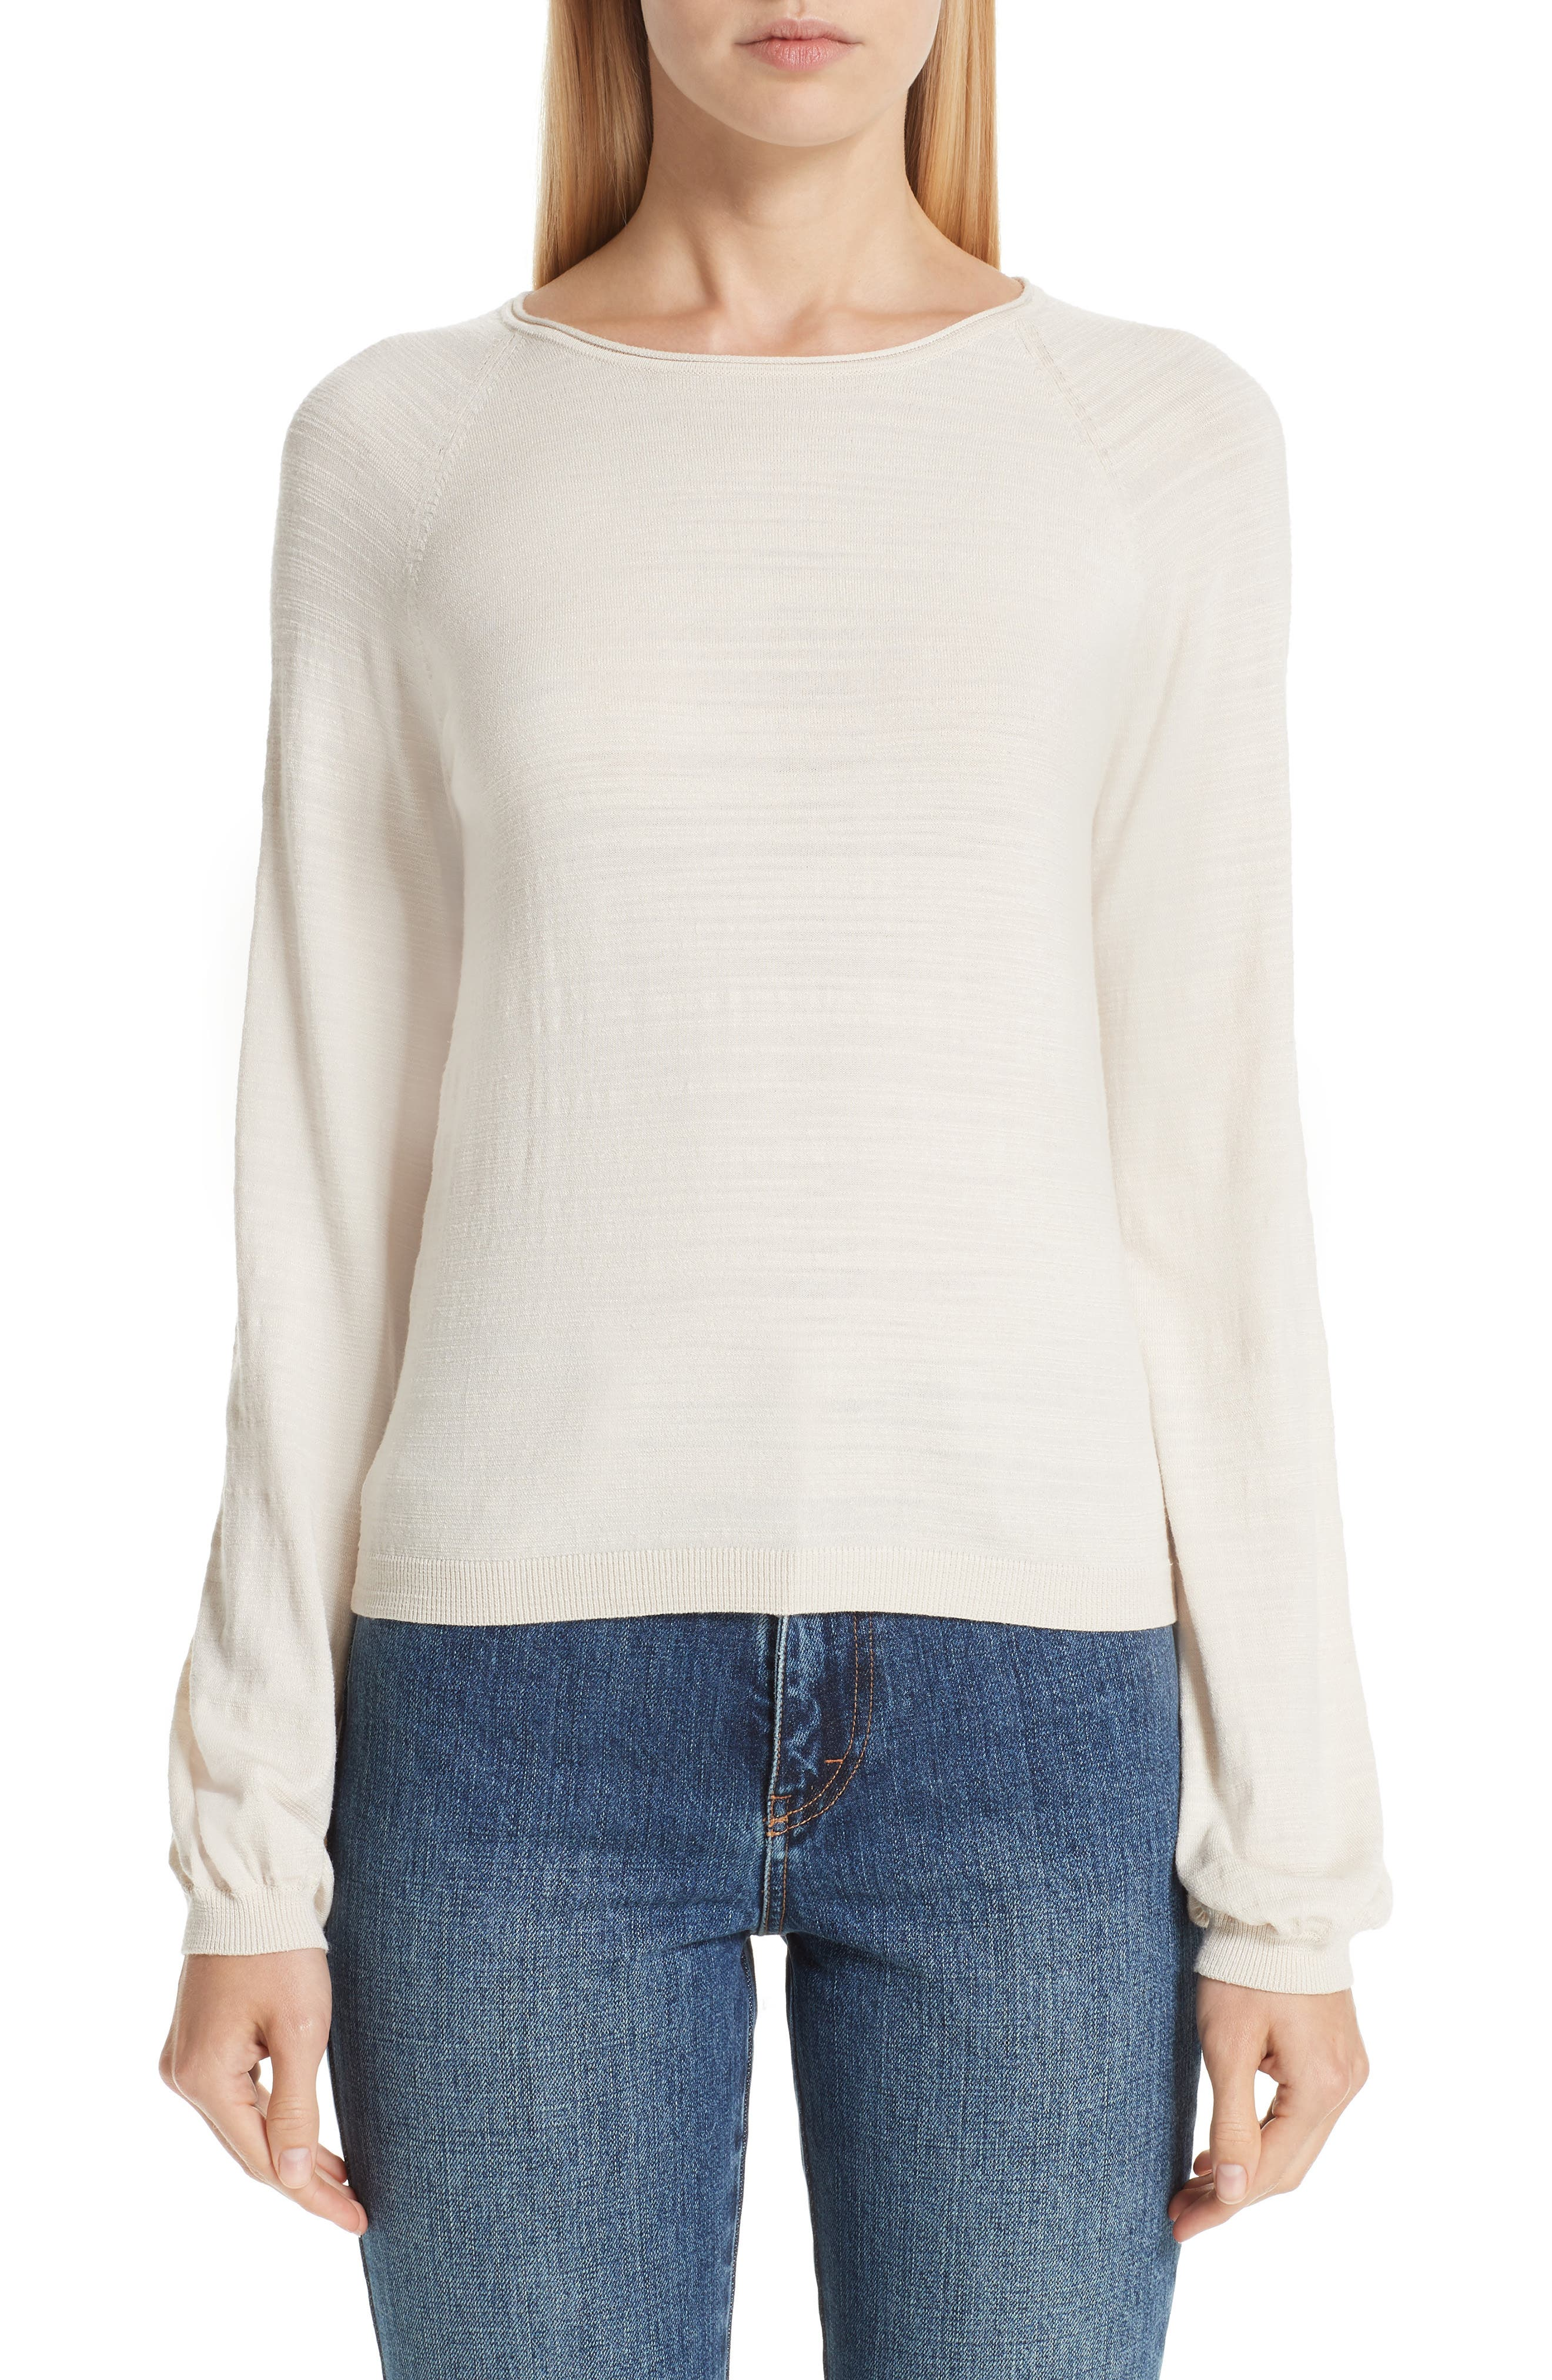 CO, Cashmere Raglan Sweater, Main thumbnail 1, color, IVORY